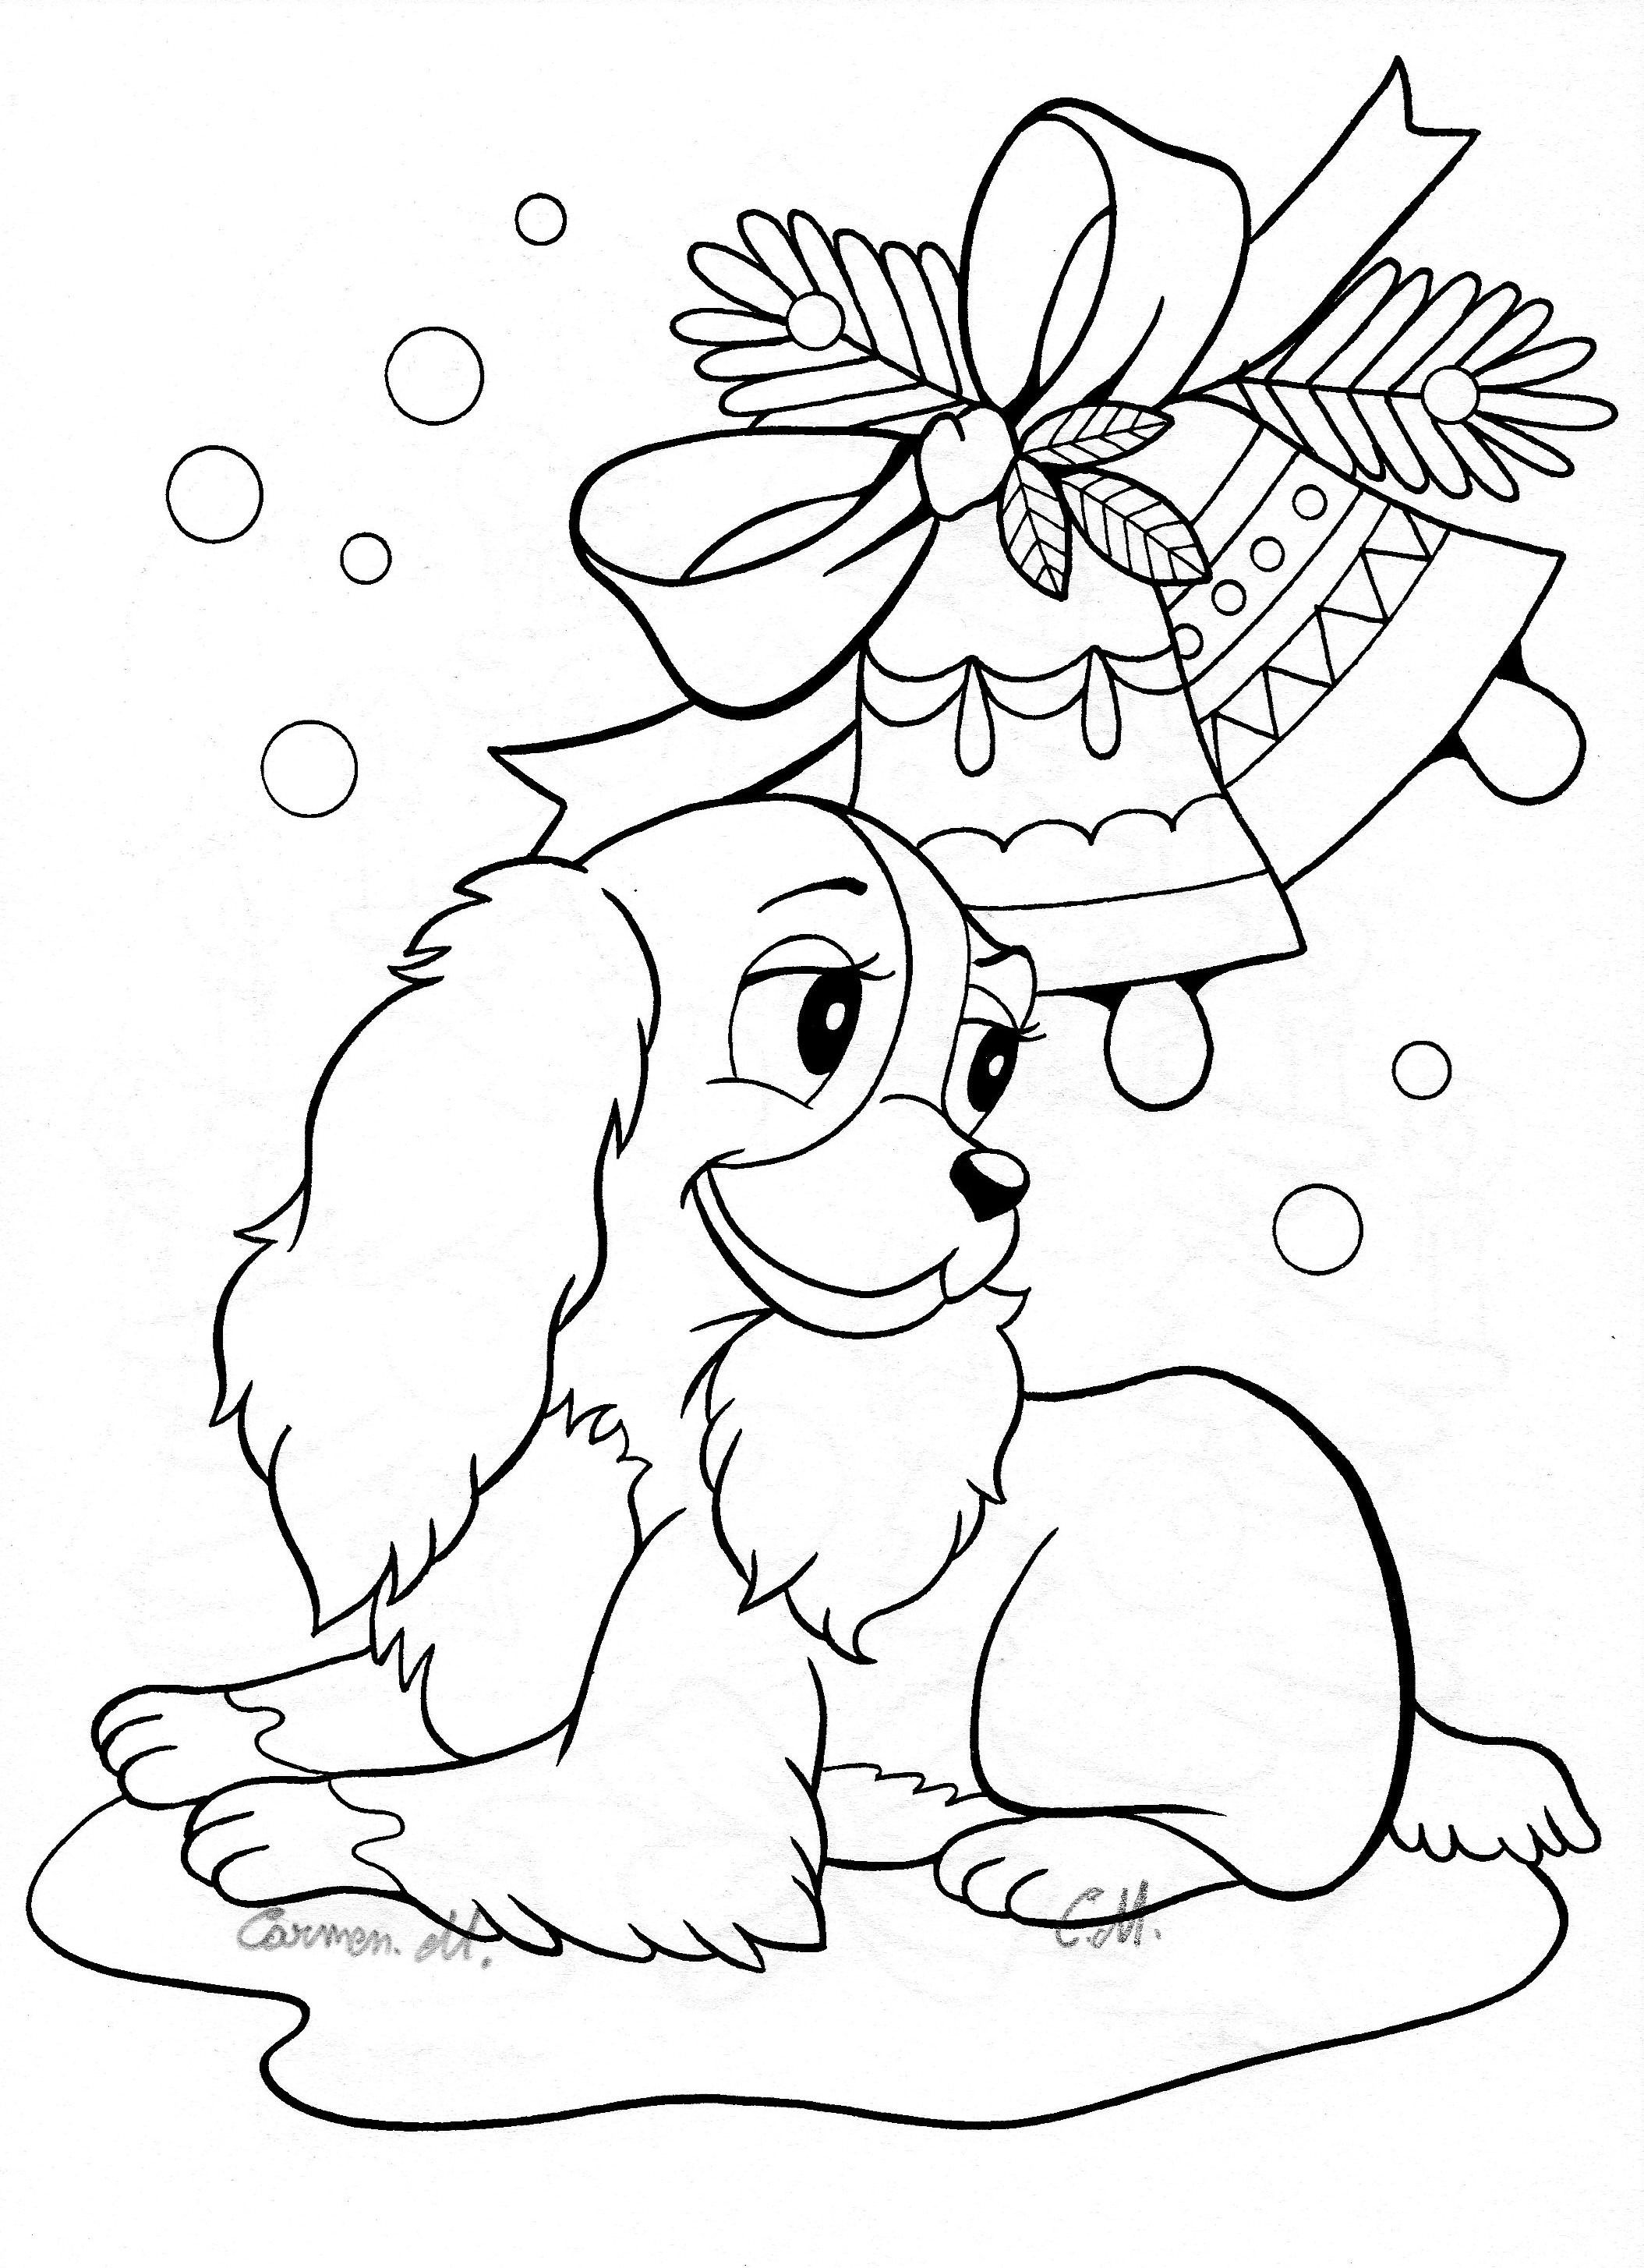 Christmas Coloring Pages Advanced Printable Christmas Coloring Pages Mermaid Coloring Pages Disney Coloring Pages